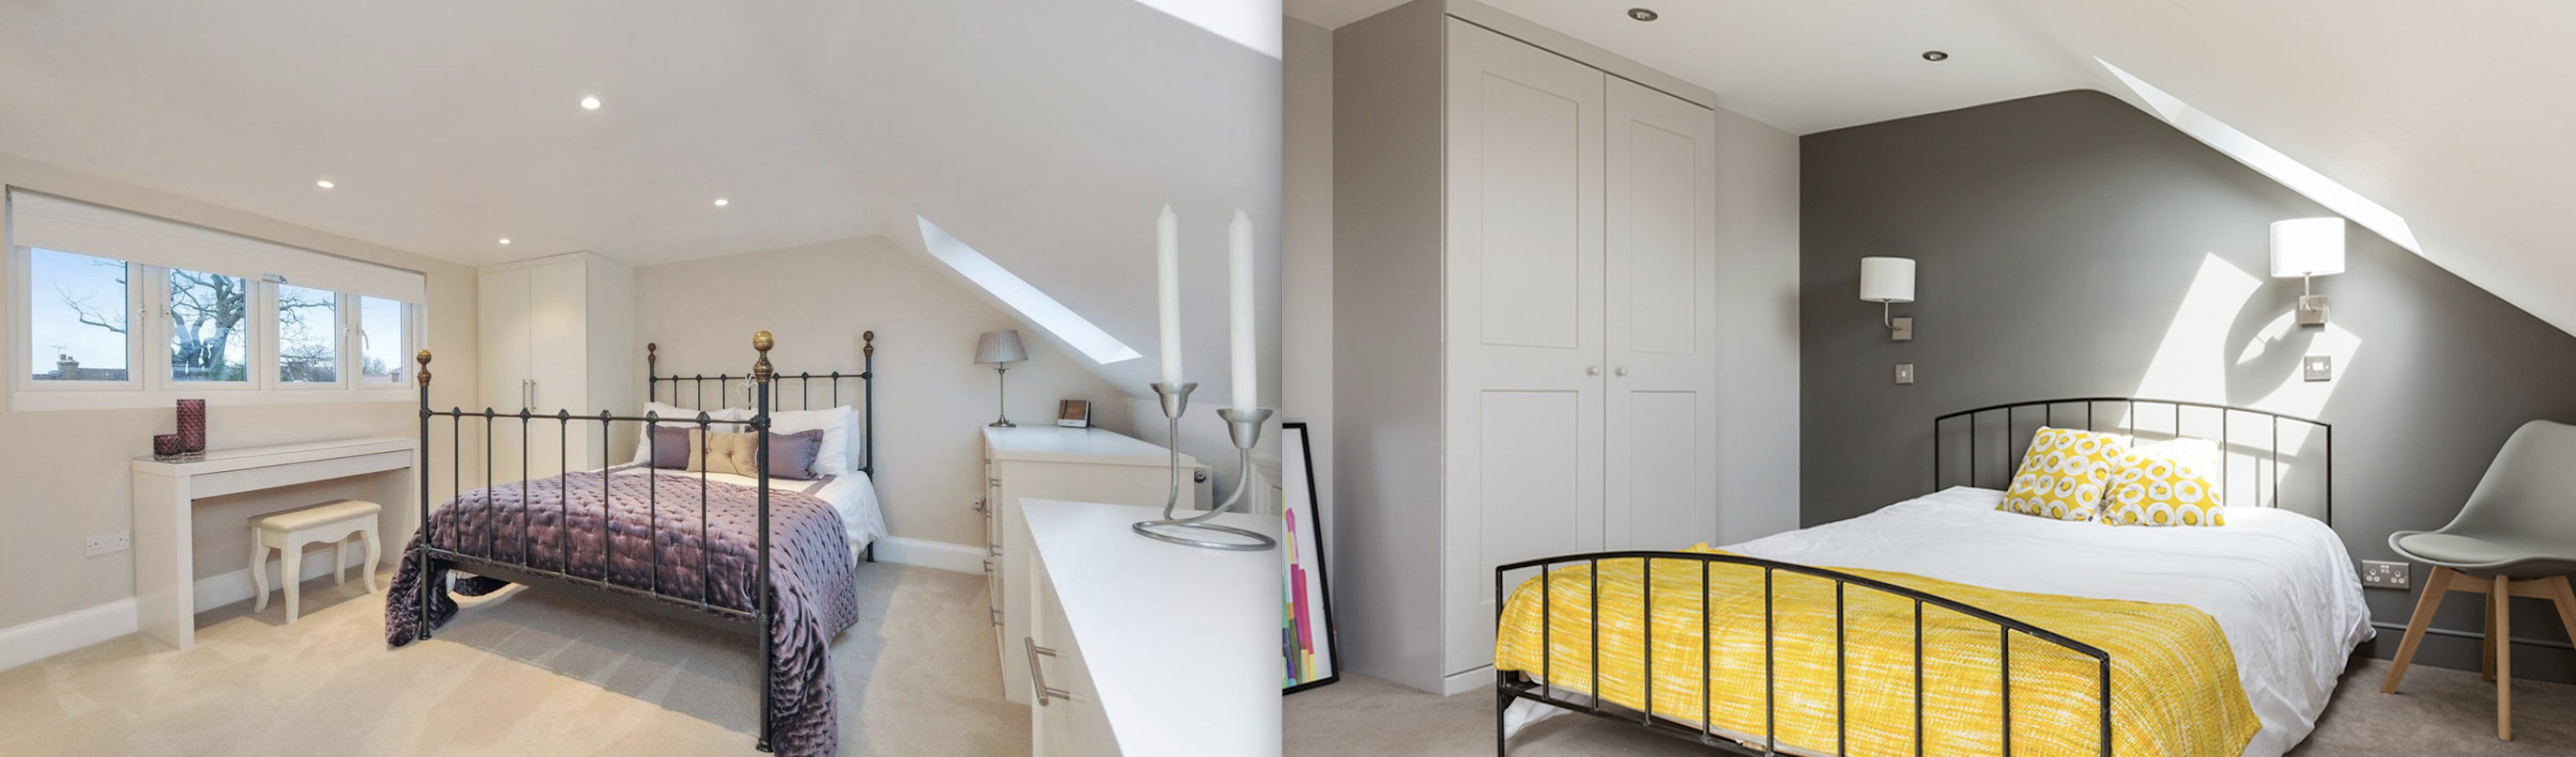 Beautiful Dormer loft conversion in Orrell, creating a new master bedroom with private bathroom, walk in wardrobe and stunning new oak staircase with Velux polyurethane SK06 GPU windows.